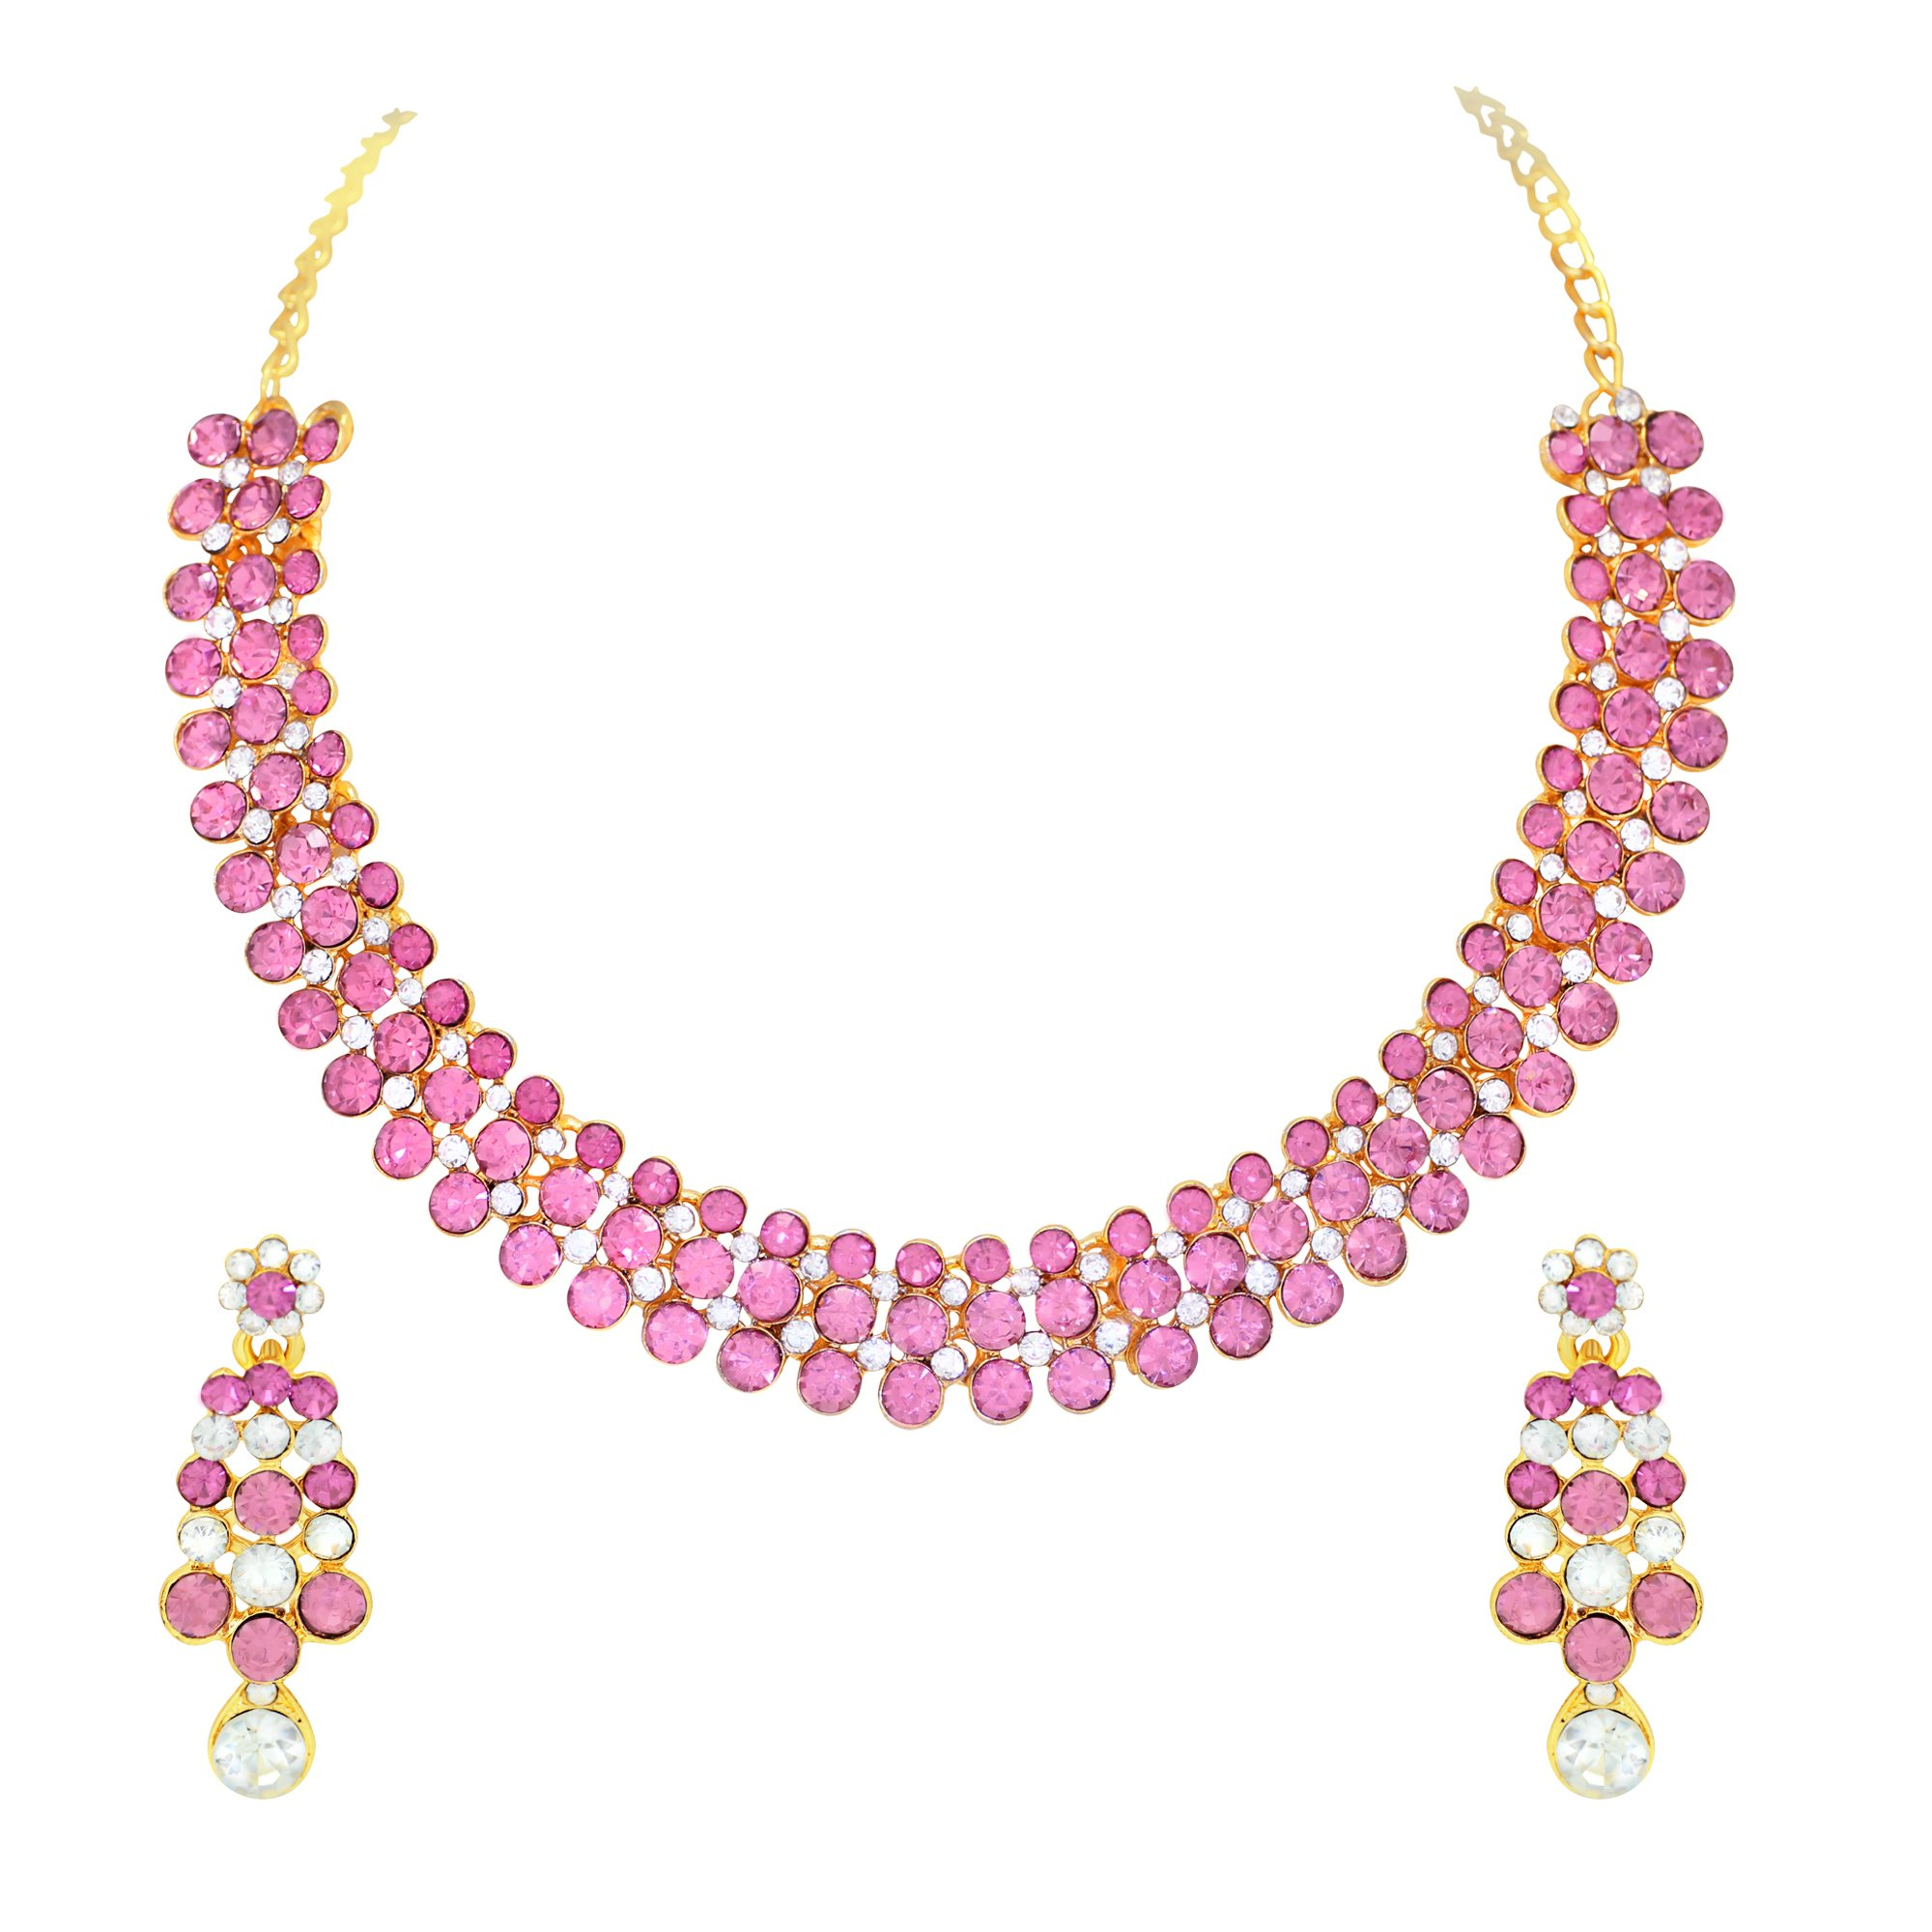 Atasi International Gold Plated Jewellery Set for Women (Pink)(GP1920) product image